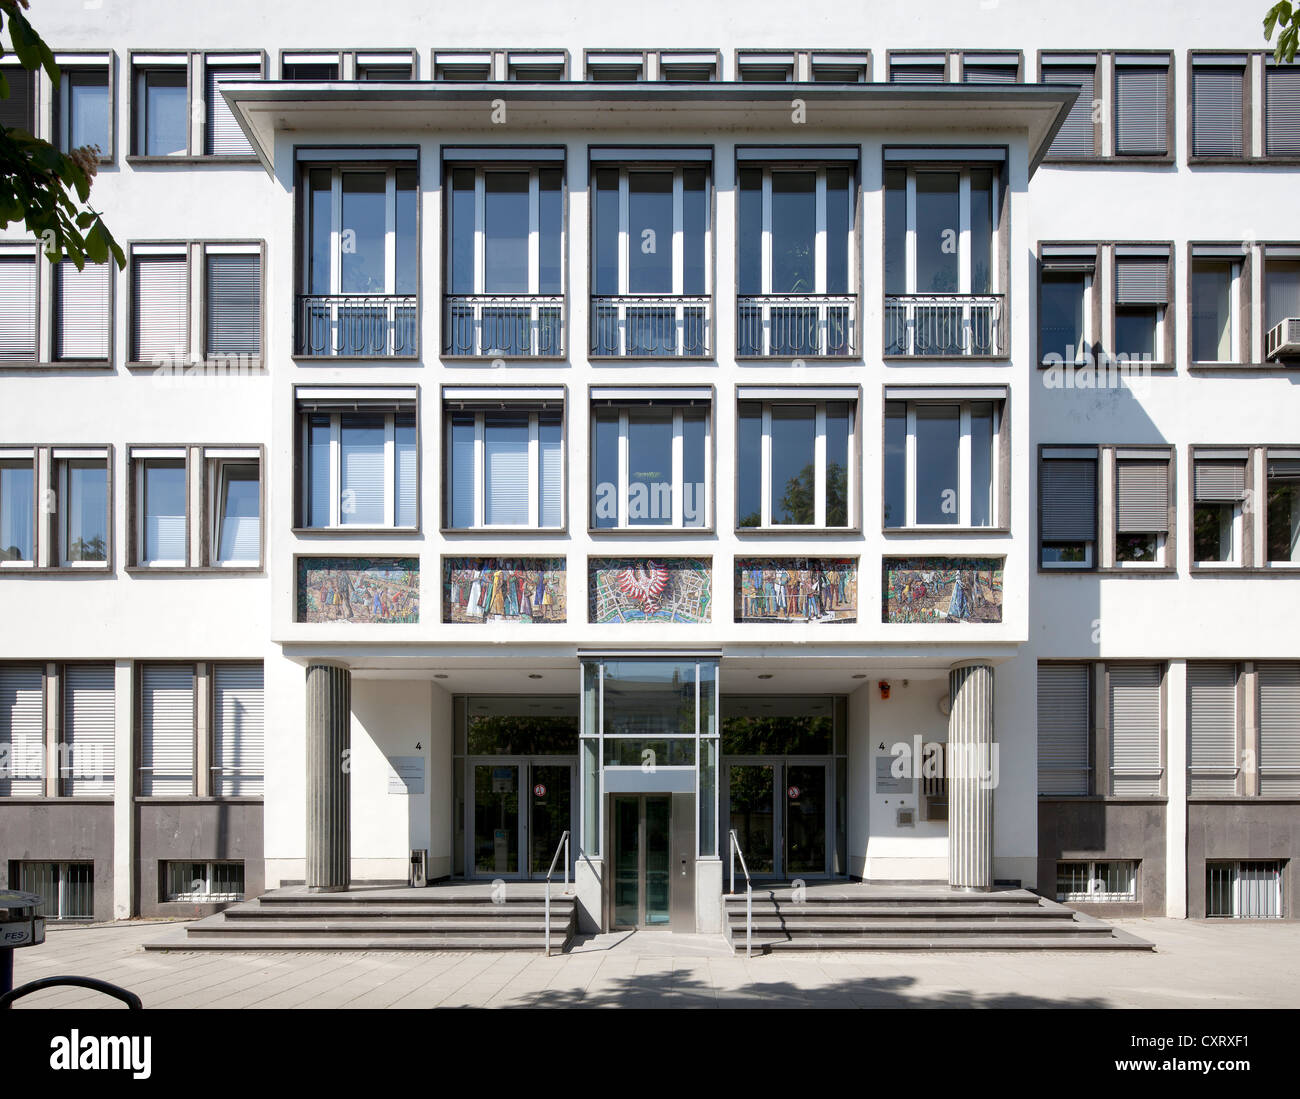 City Hall, extension of the Roemer building from the 1950s, Frankfurt am Main, Hesse, PublicGround - Stock Image